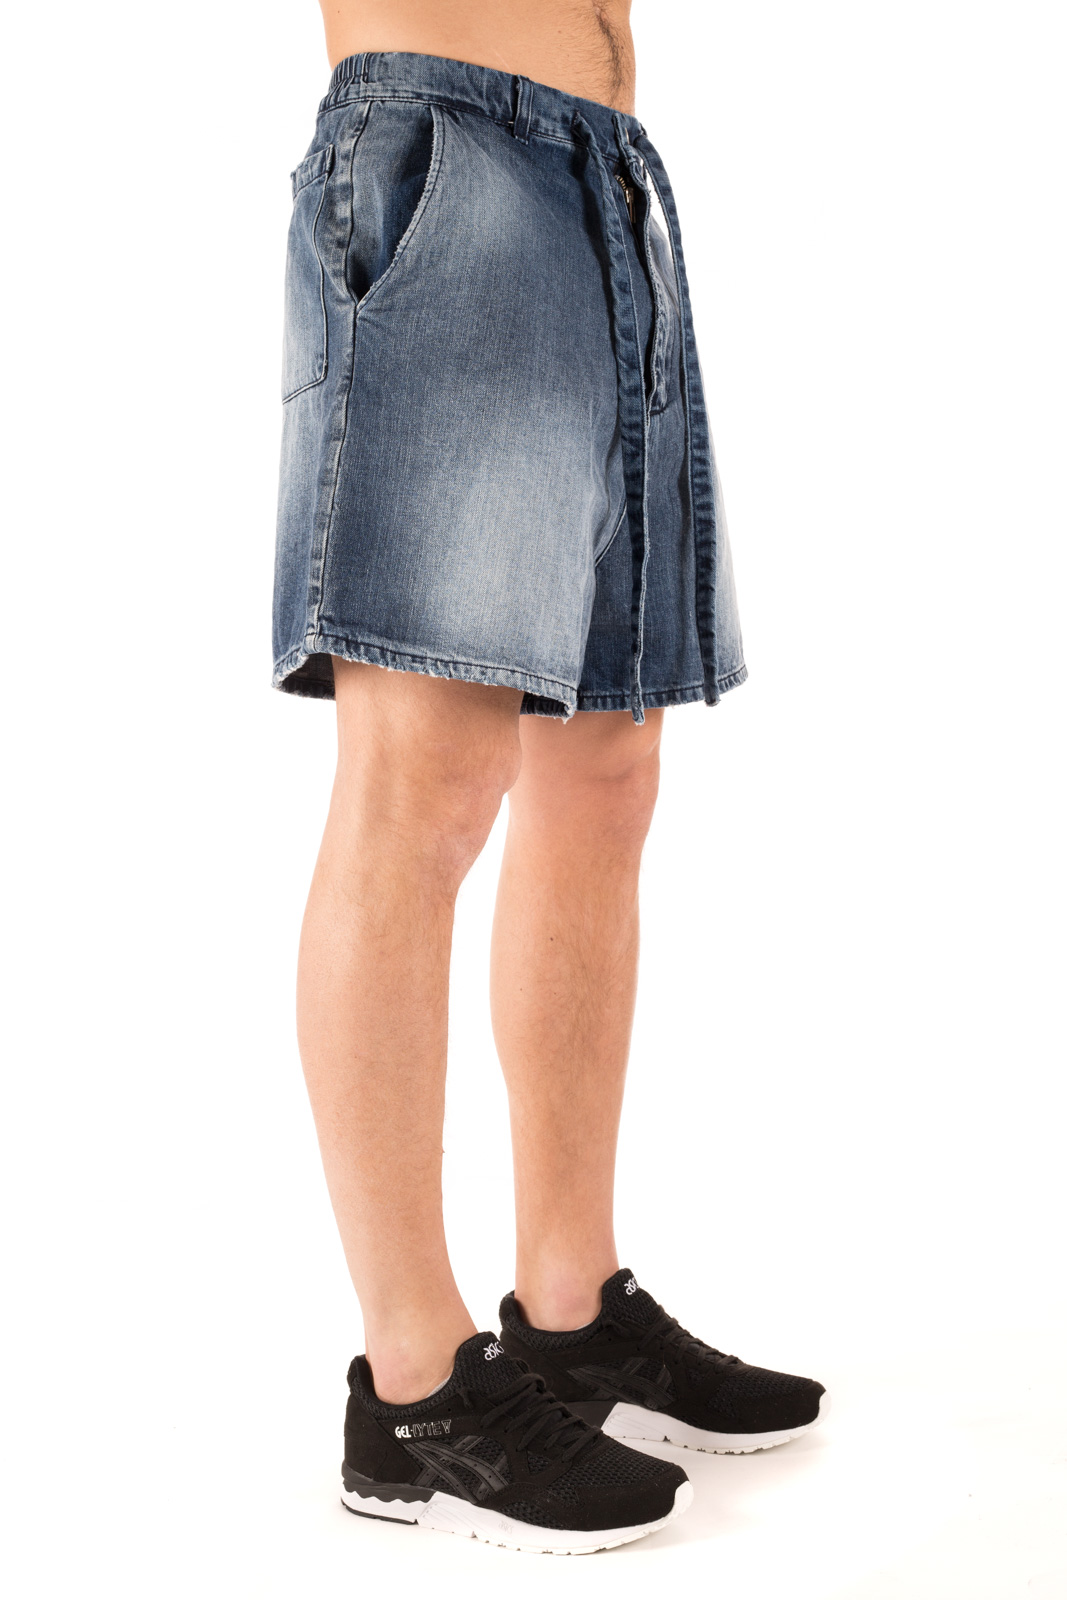 Paura - Ivan shorts oversize denim